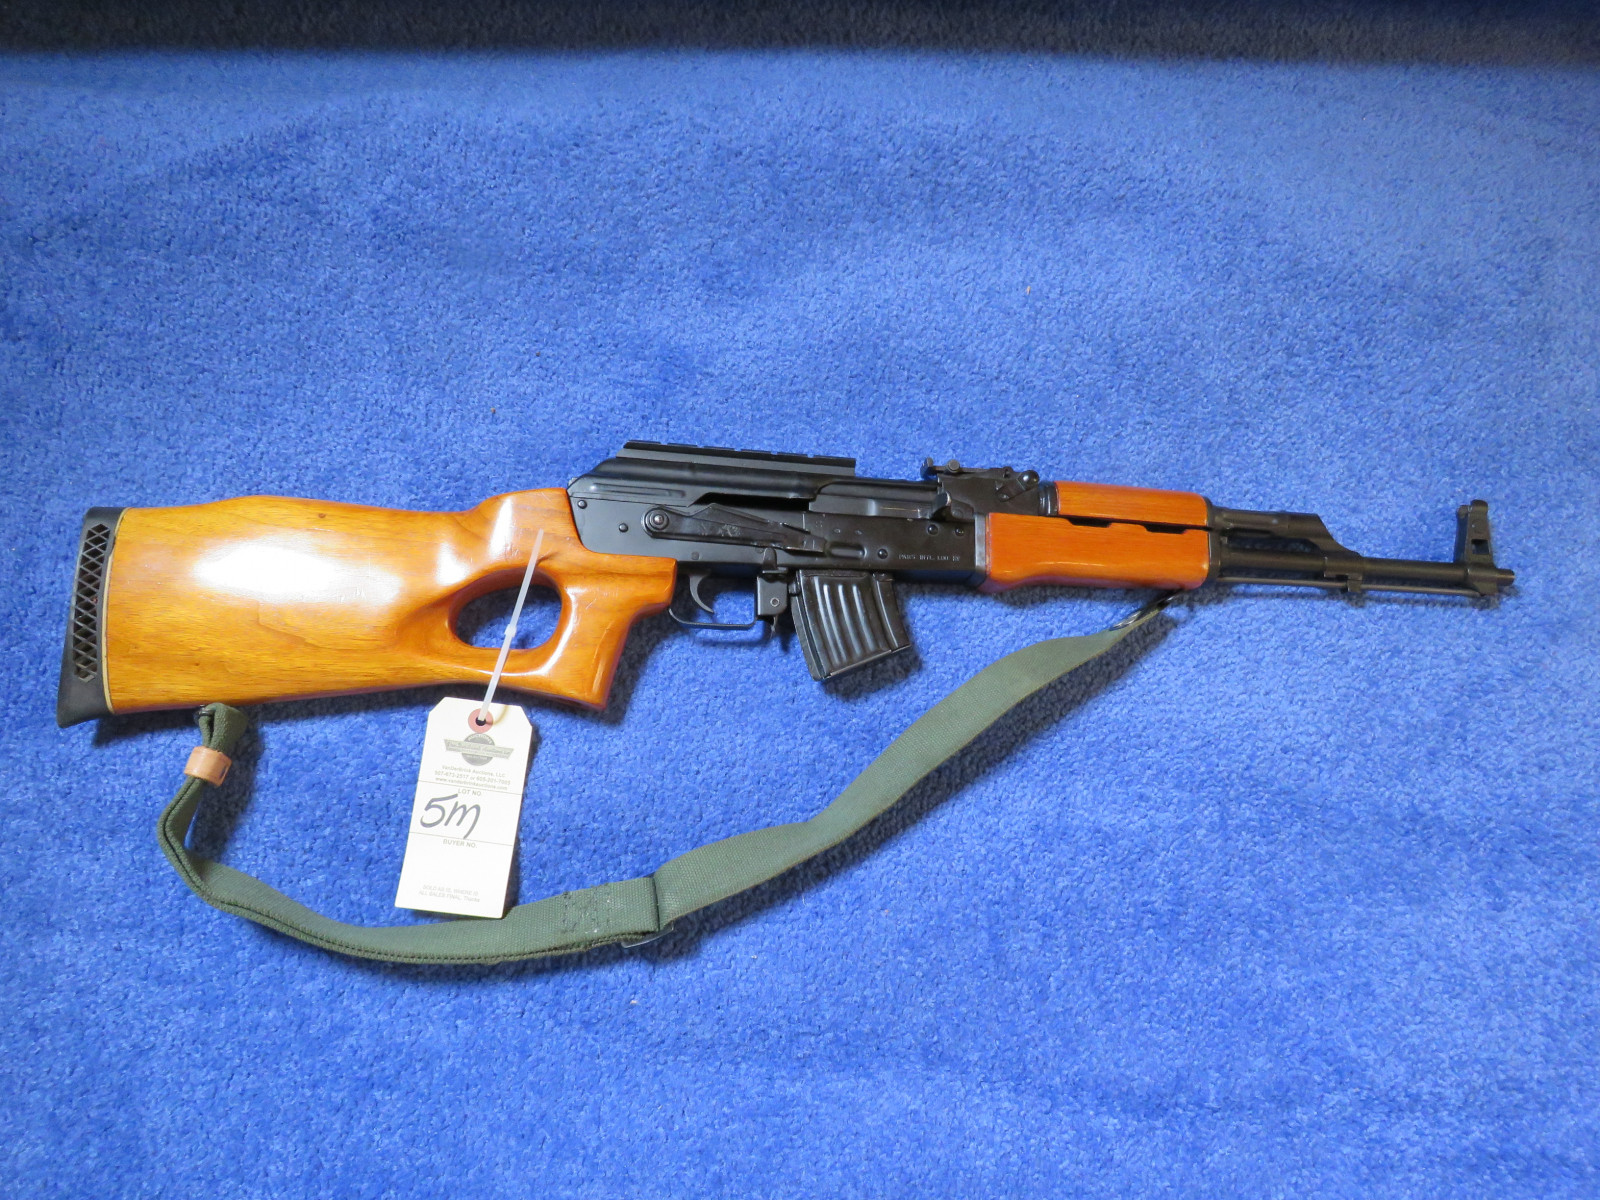 MAADI Corporation      AK-47 Semi-Automatic Rifle ES U3243 - Image 2